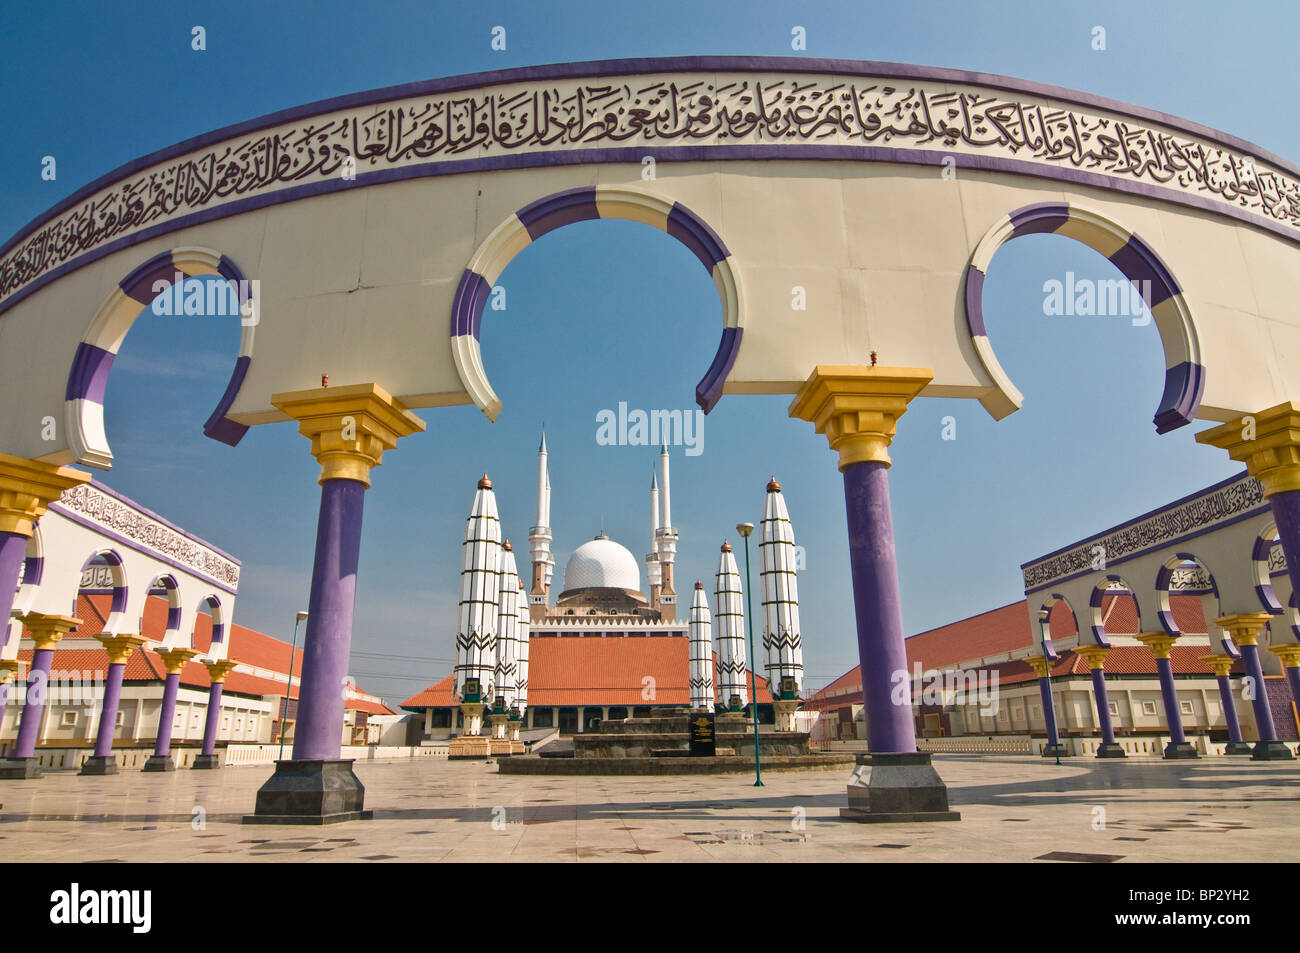 Grand Mosque of Semarang, Central Java Province - Stock Image